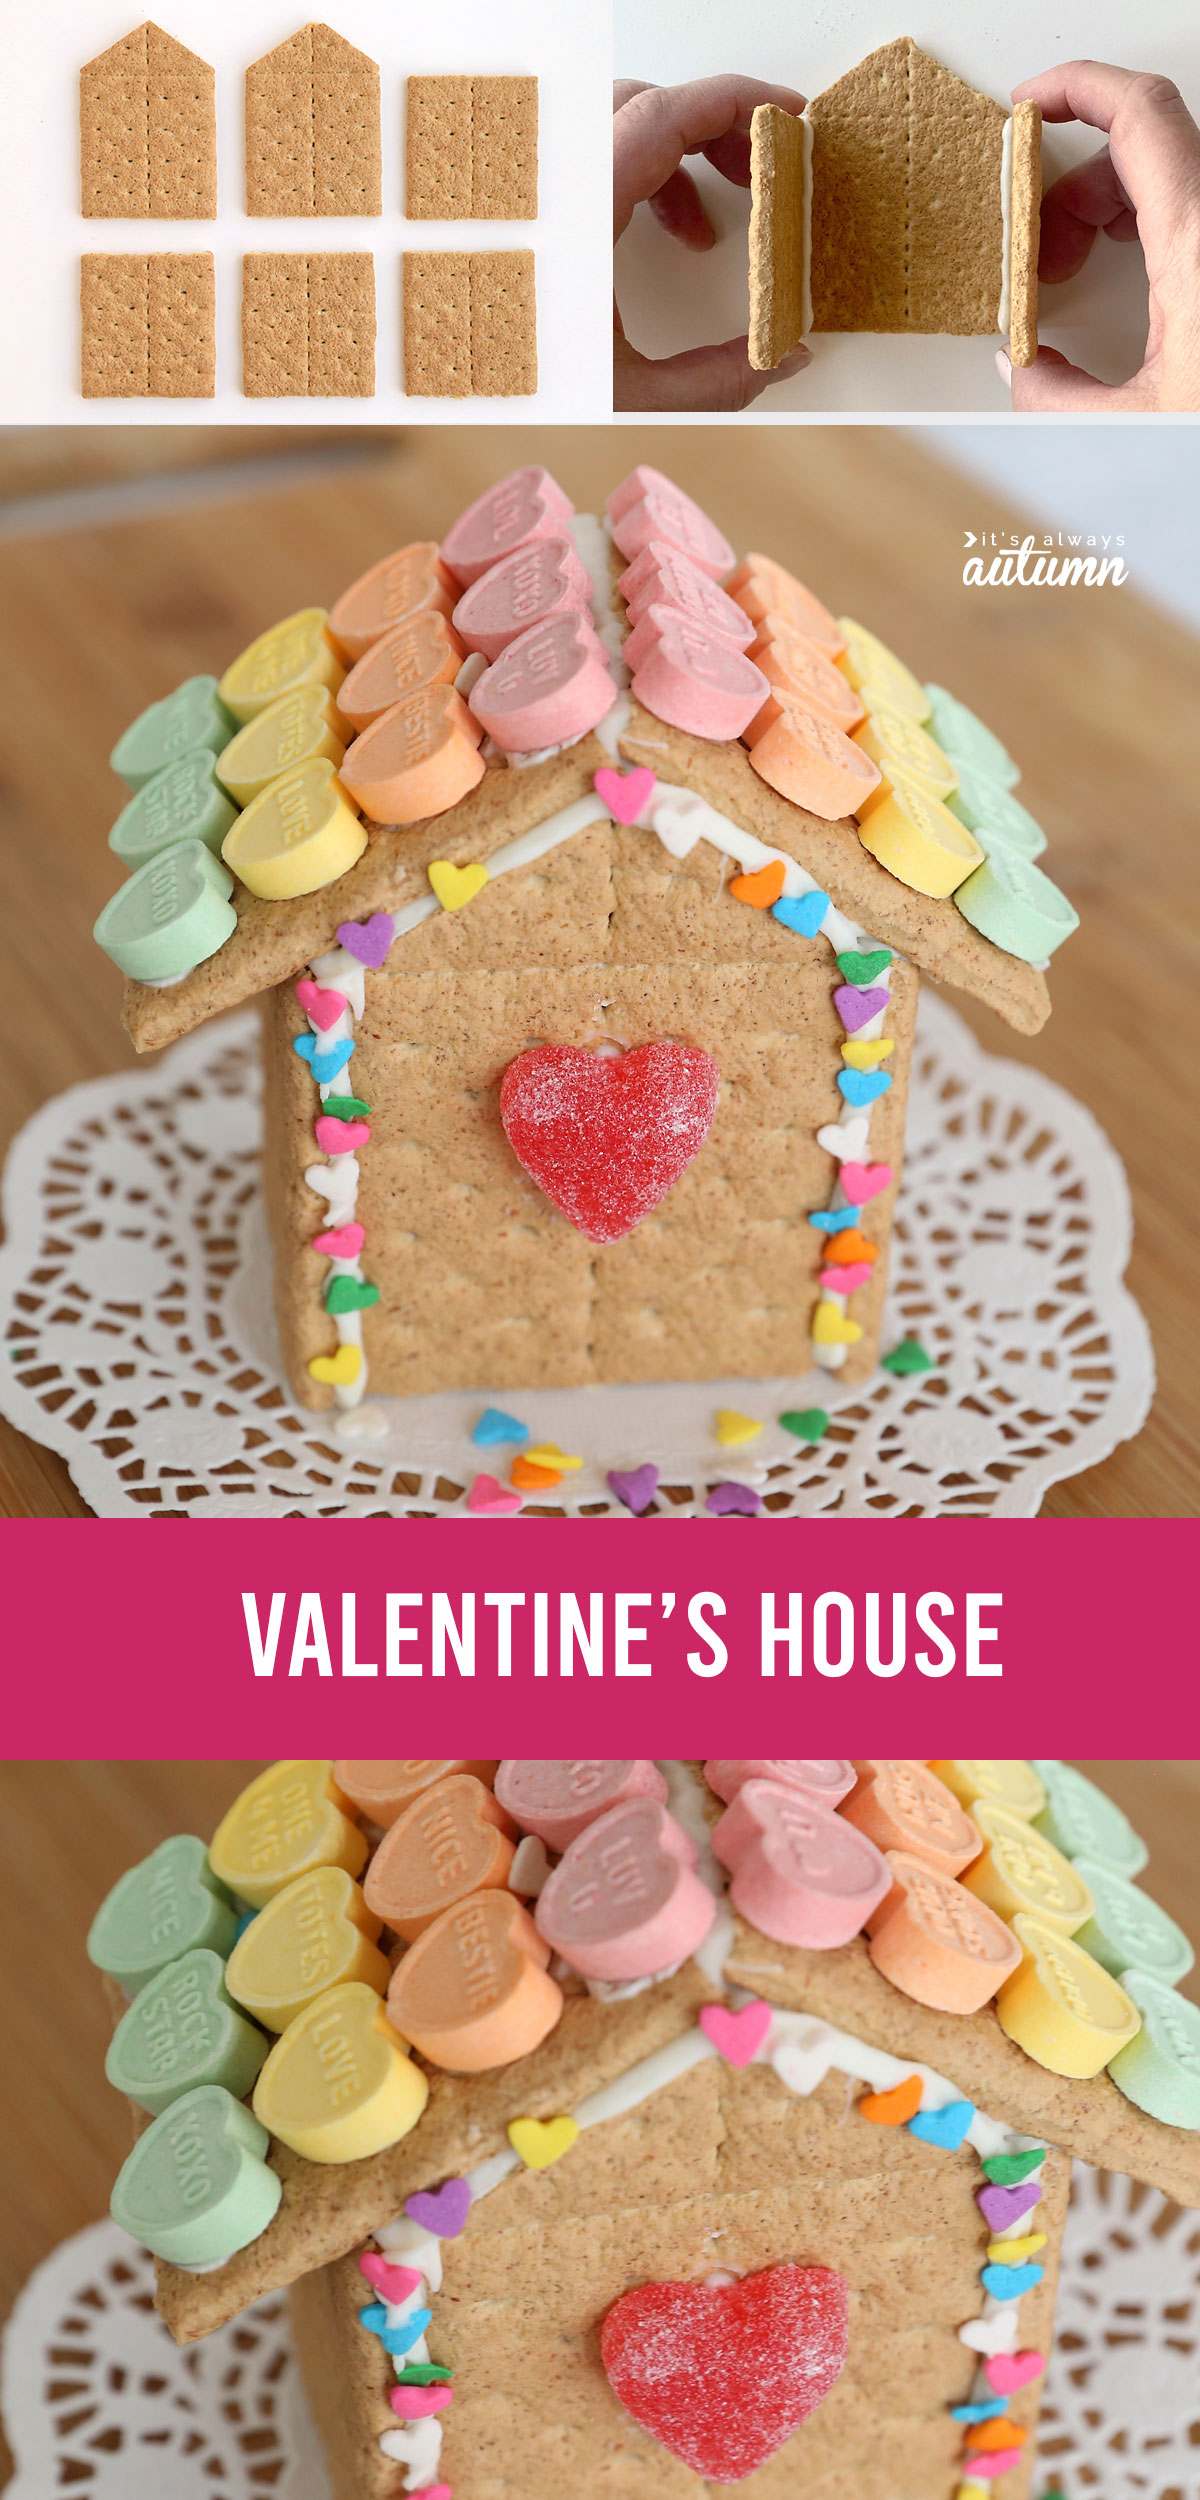 Valentine's Day gingerbead house made from graham crackers decorated with Valentines candy